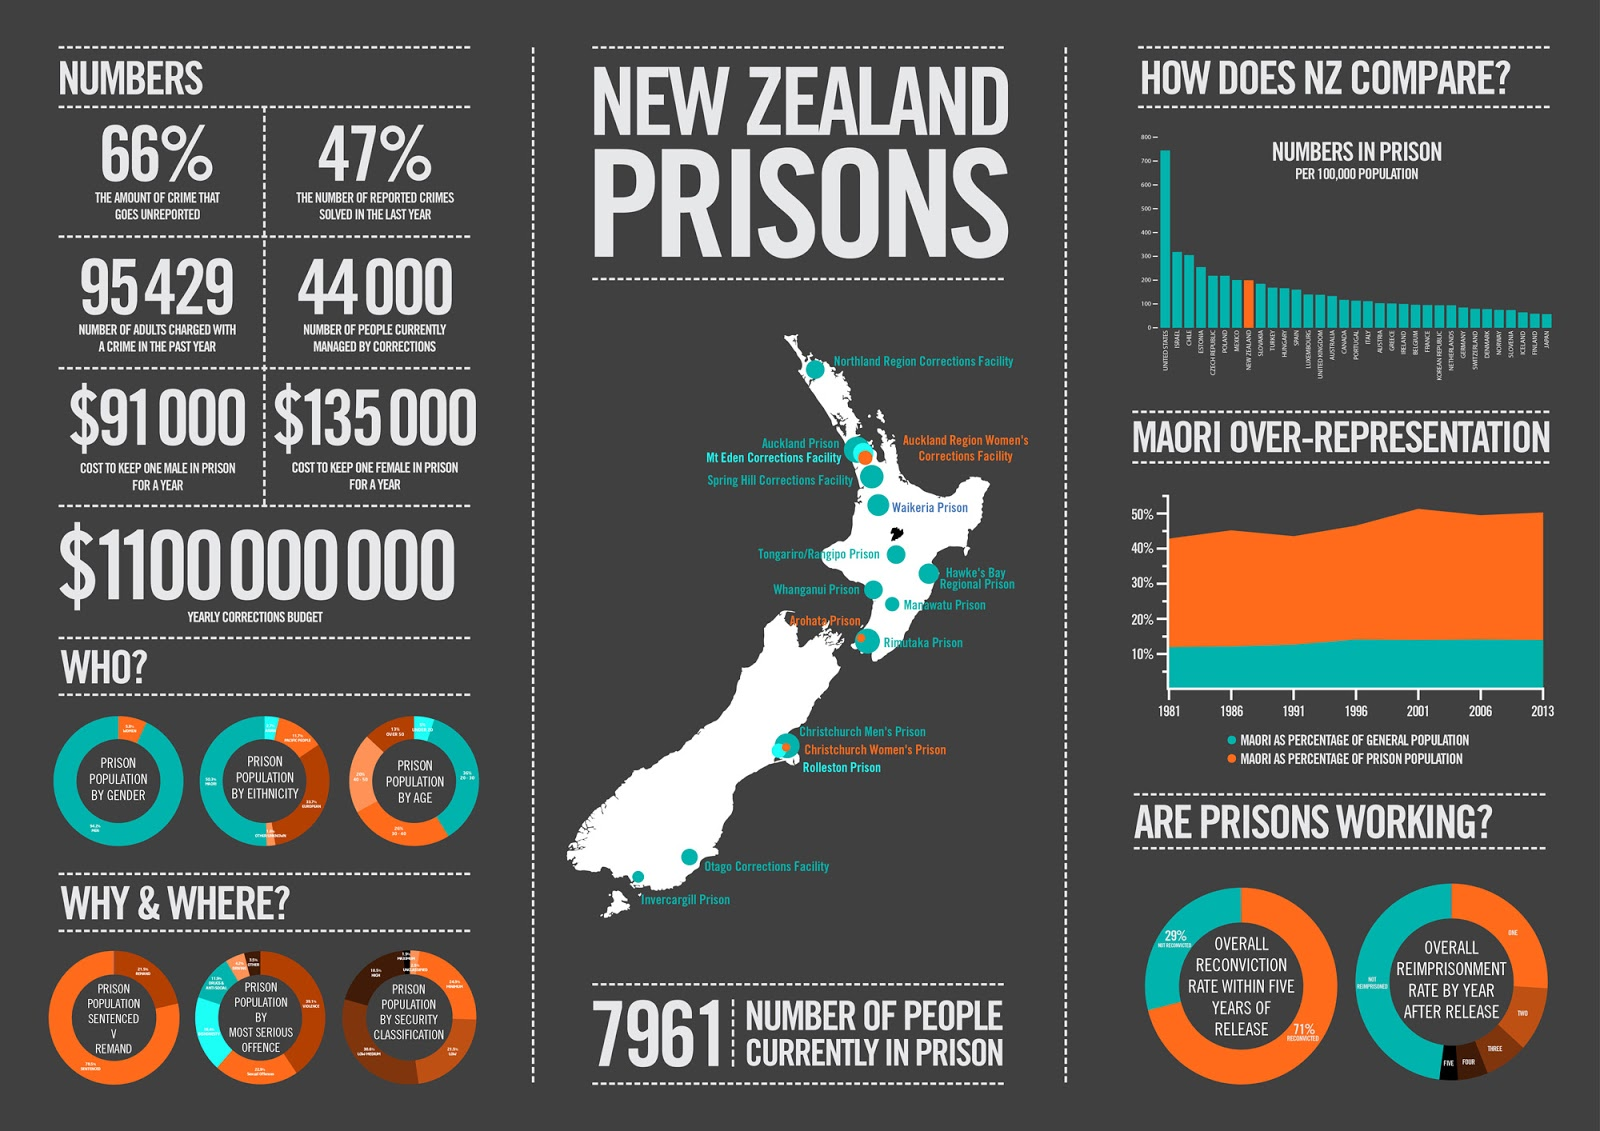 Graphic from three years ago. The prison population has continued its relentless rise since then to over 10,000 today.